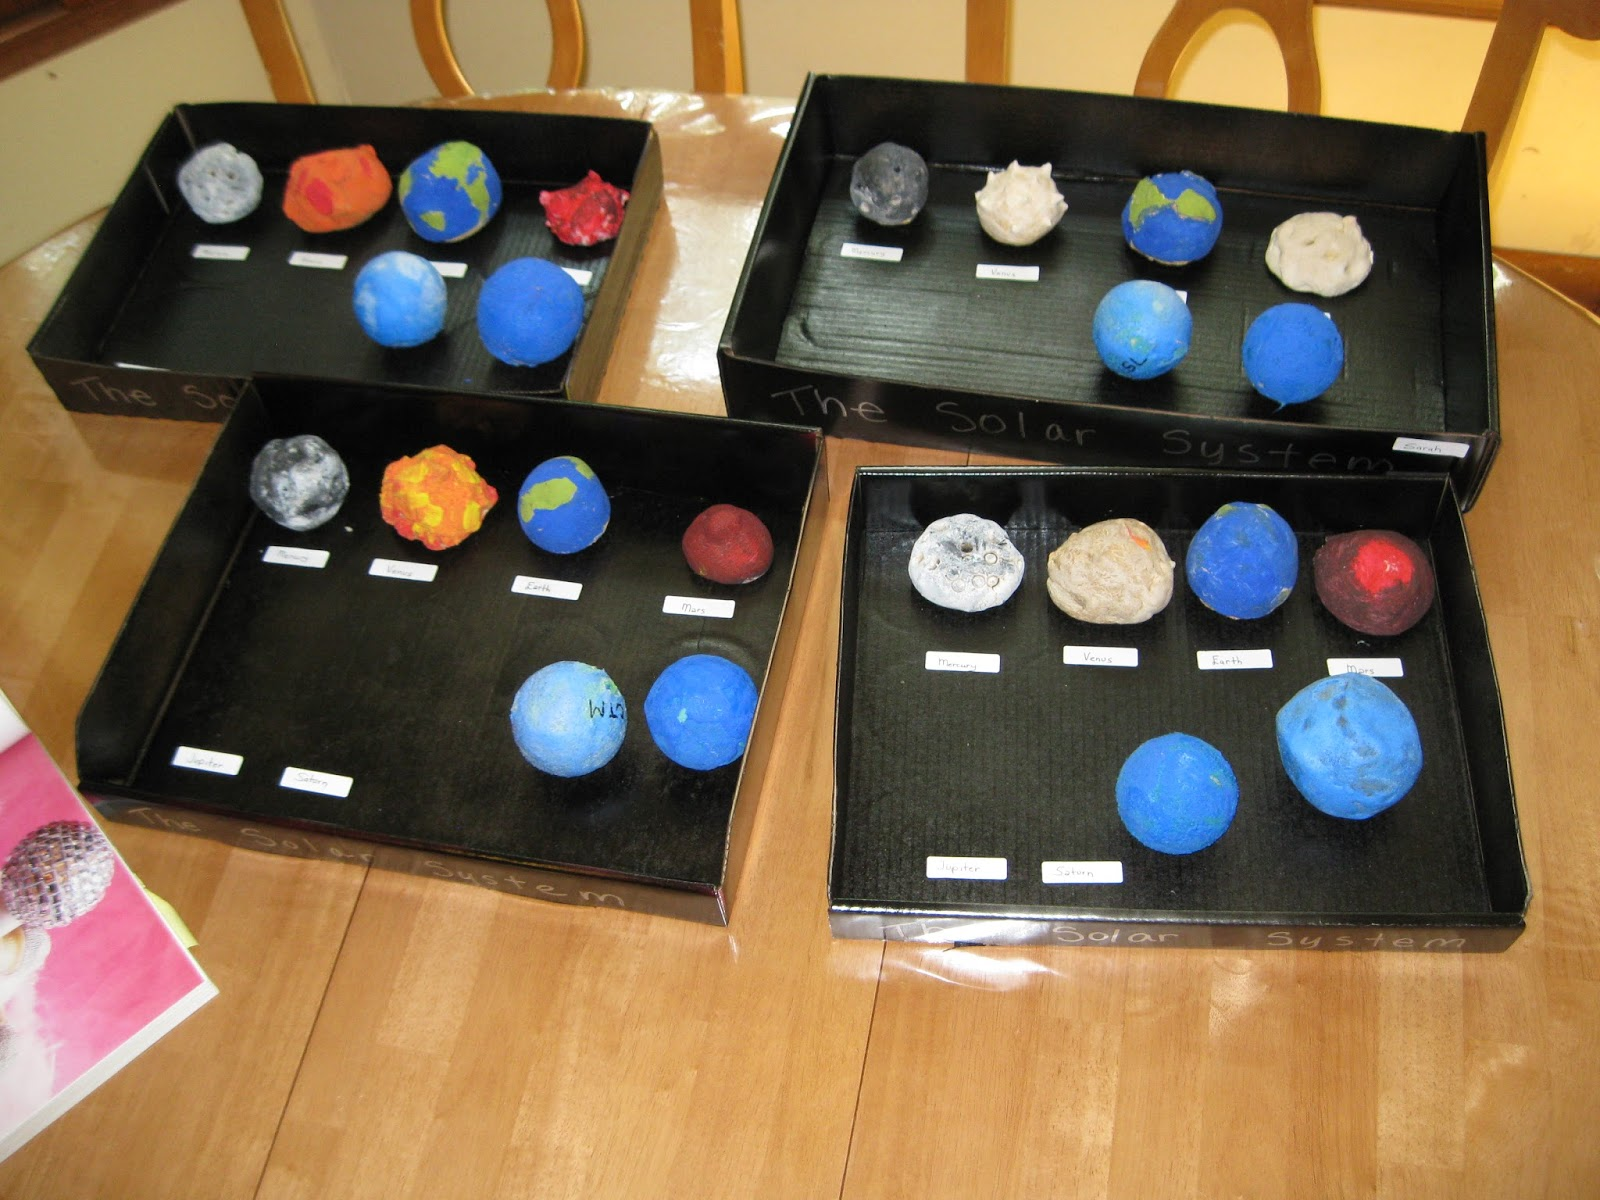 solar system model project